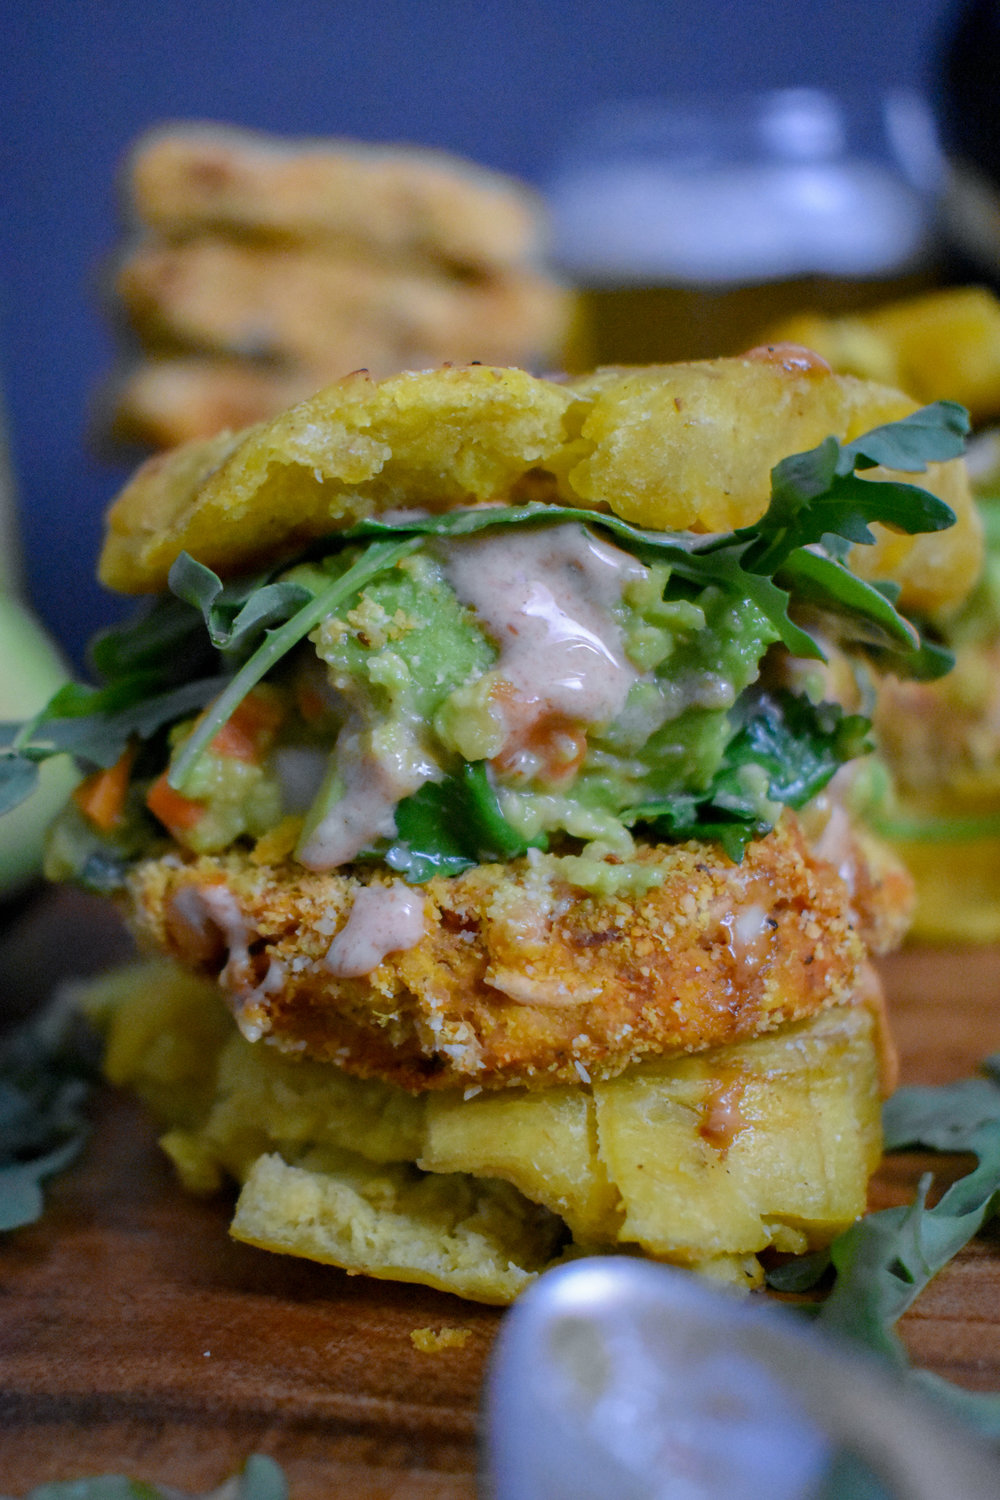 8. To serve, use 2 plantain tostones as your bun and layer on a patty, guac, chipotle mayo, and a bit of arugula is nice.